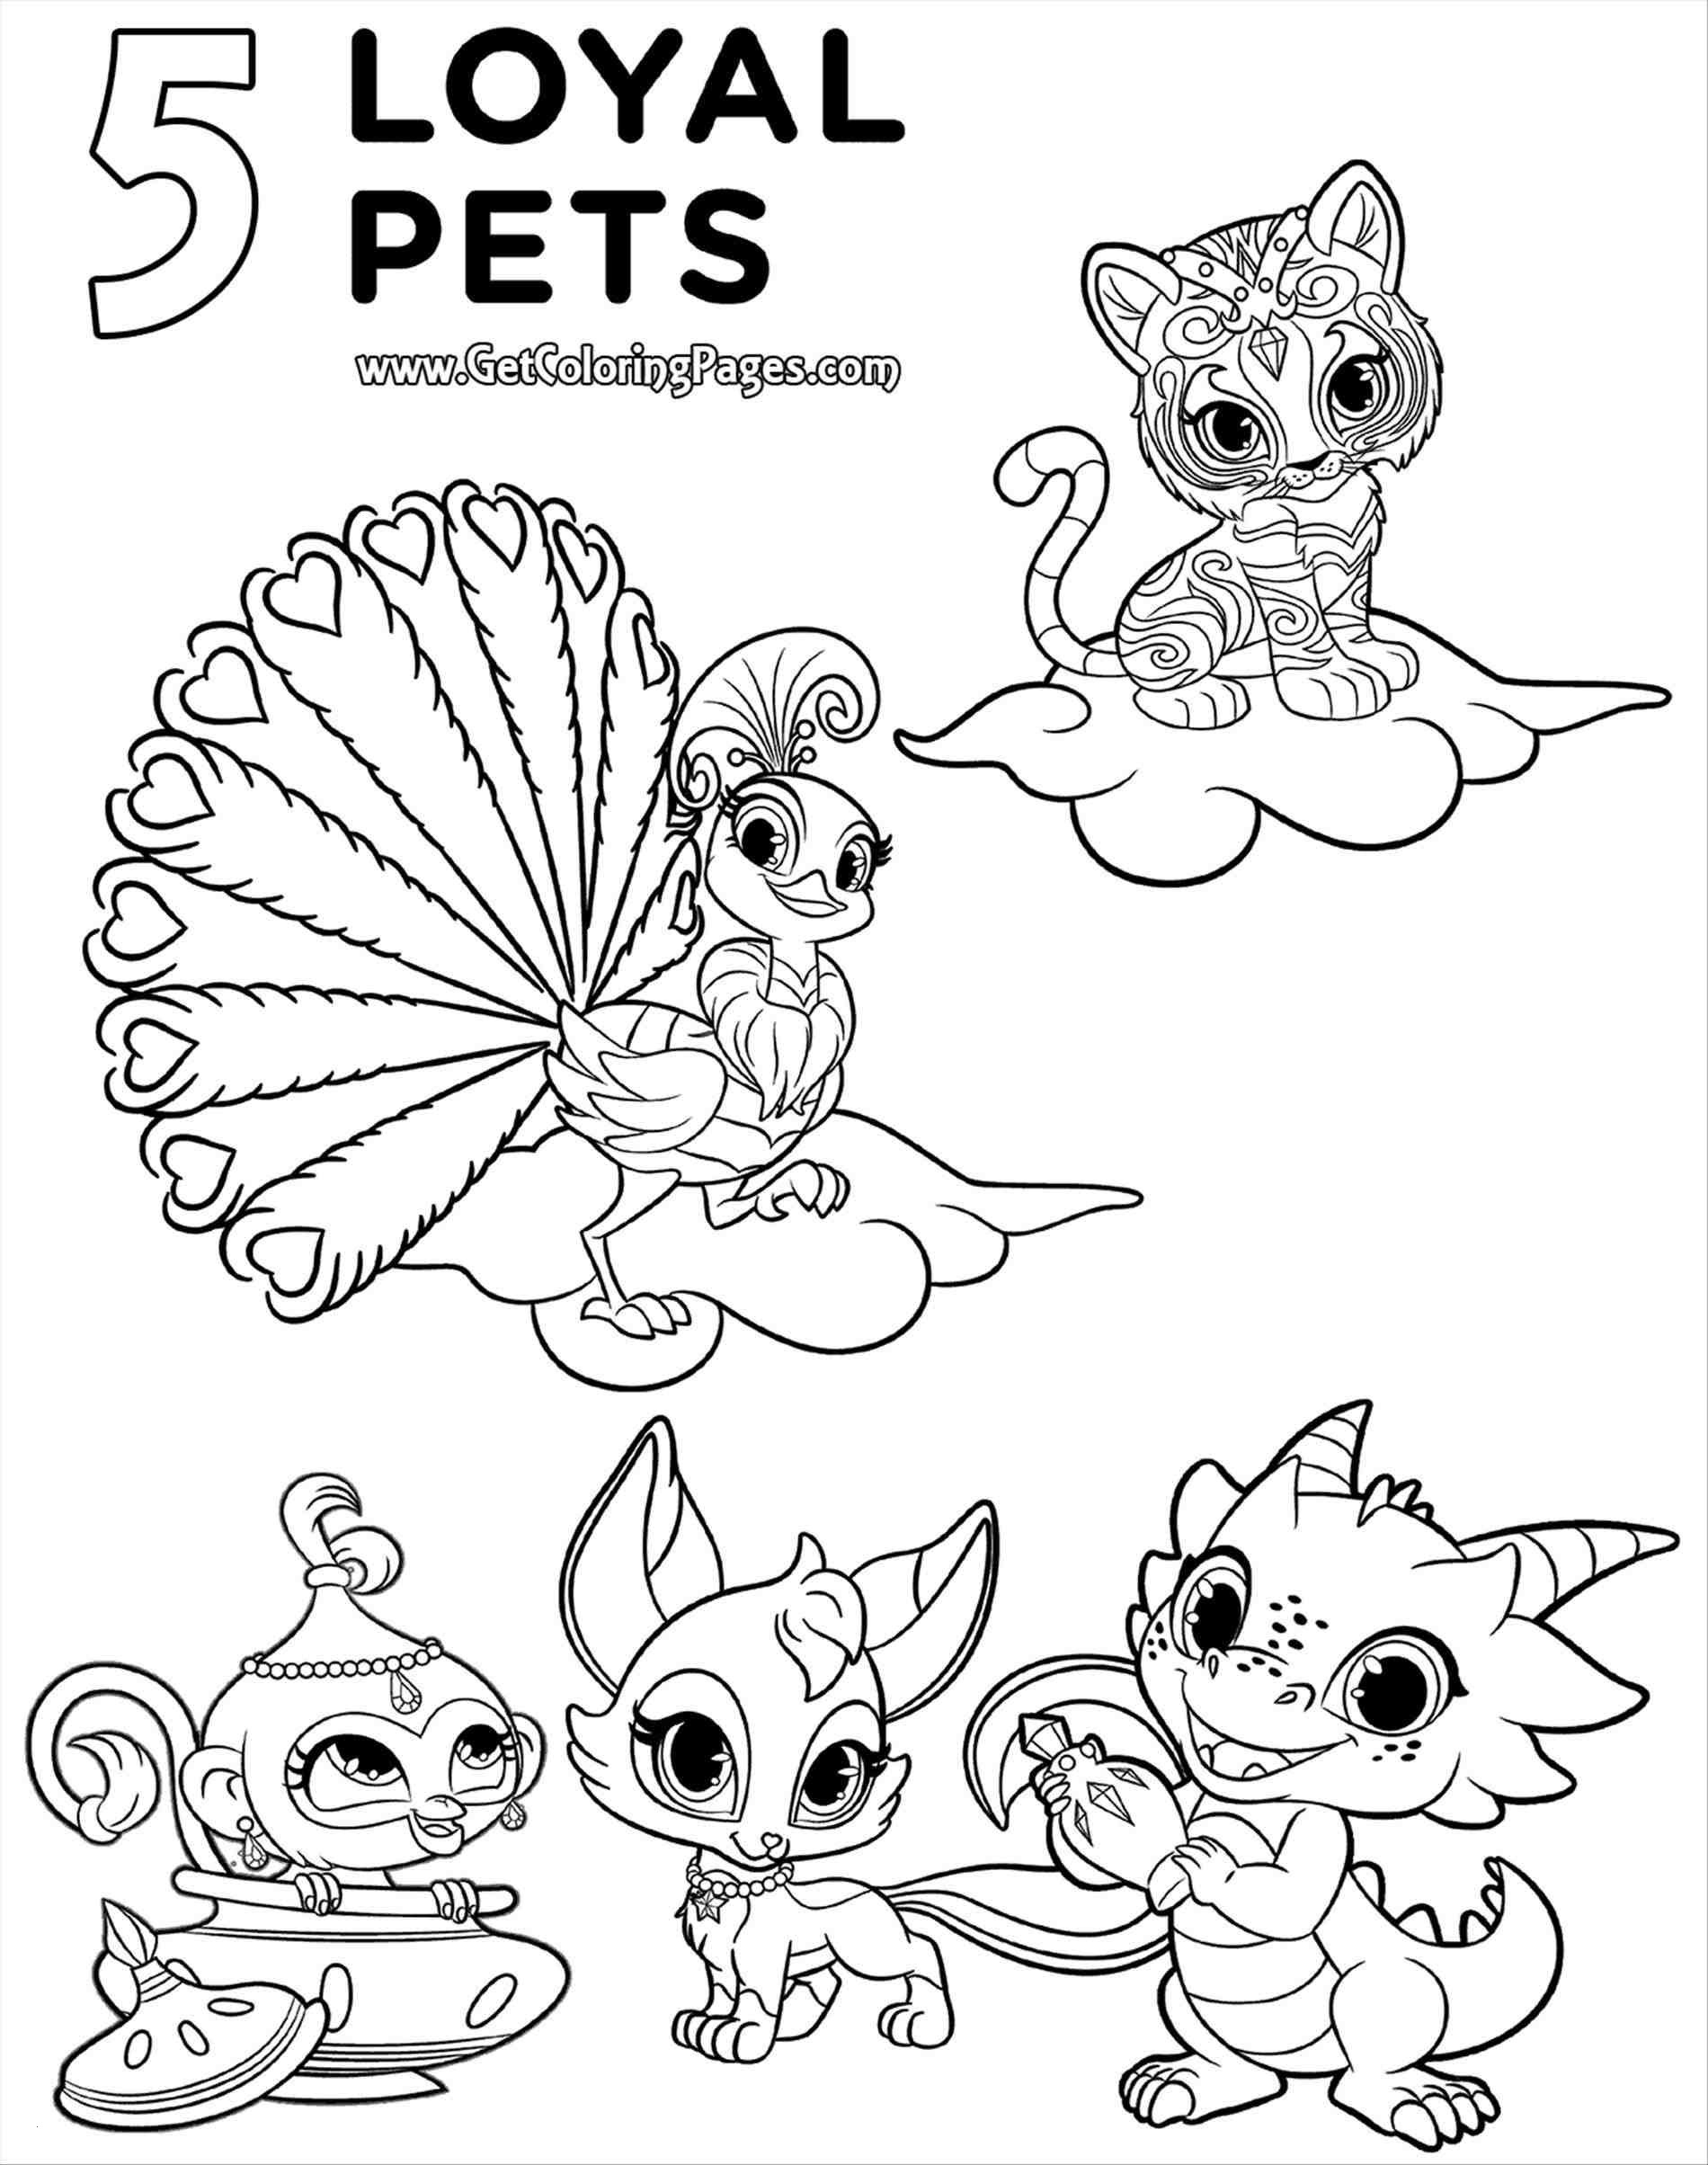 Printable Shimmer and Shine Coloring Pages  Collection 1a - Free For Children